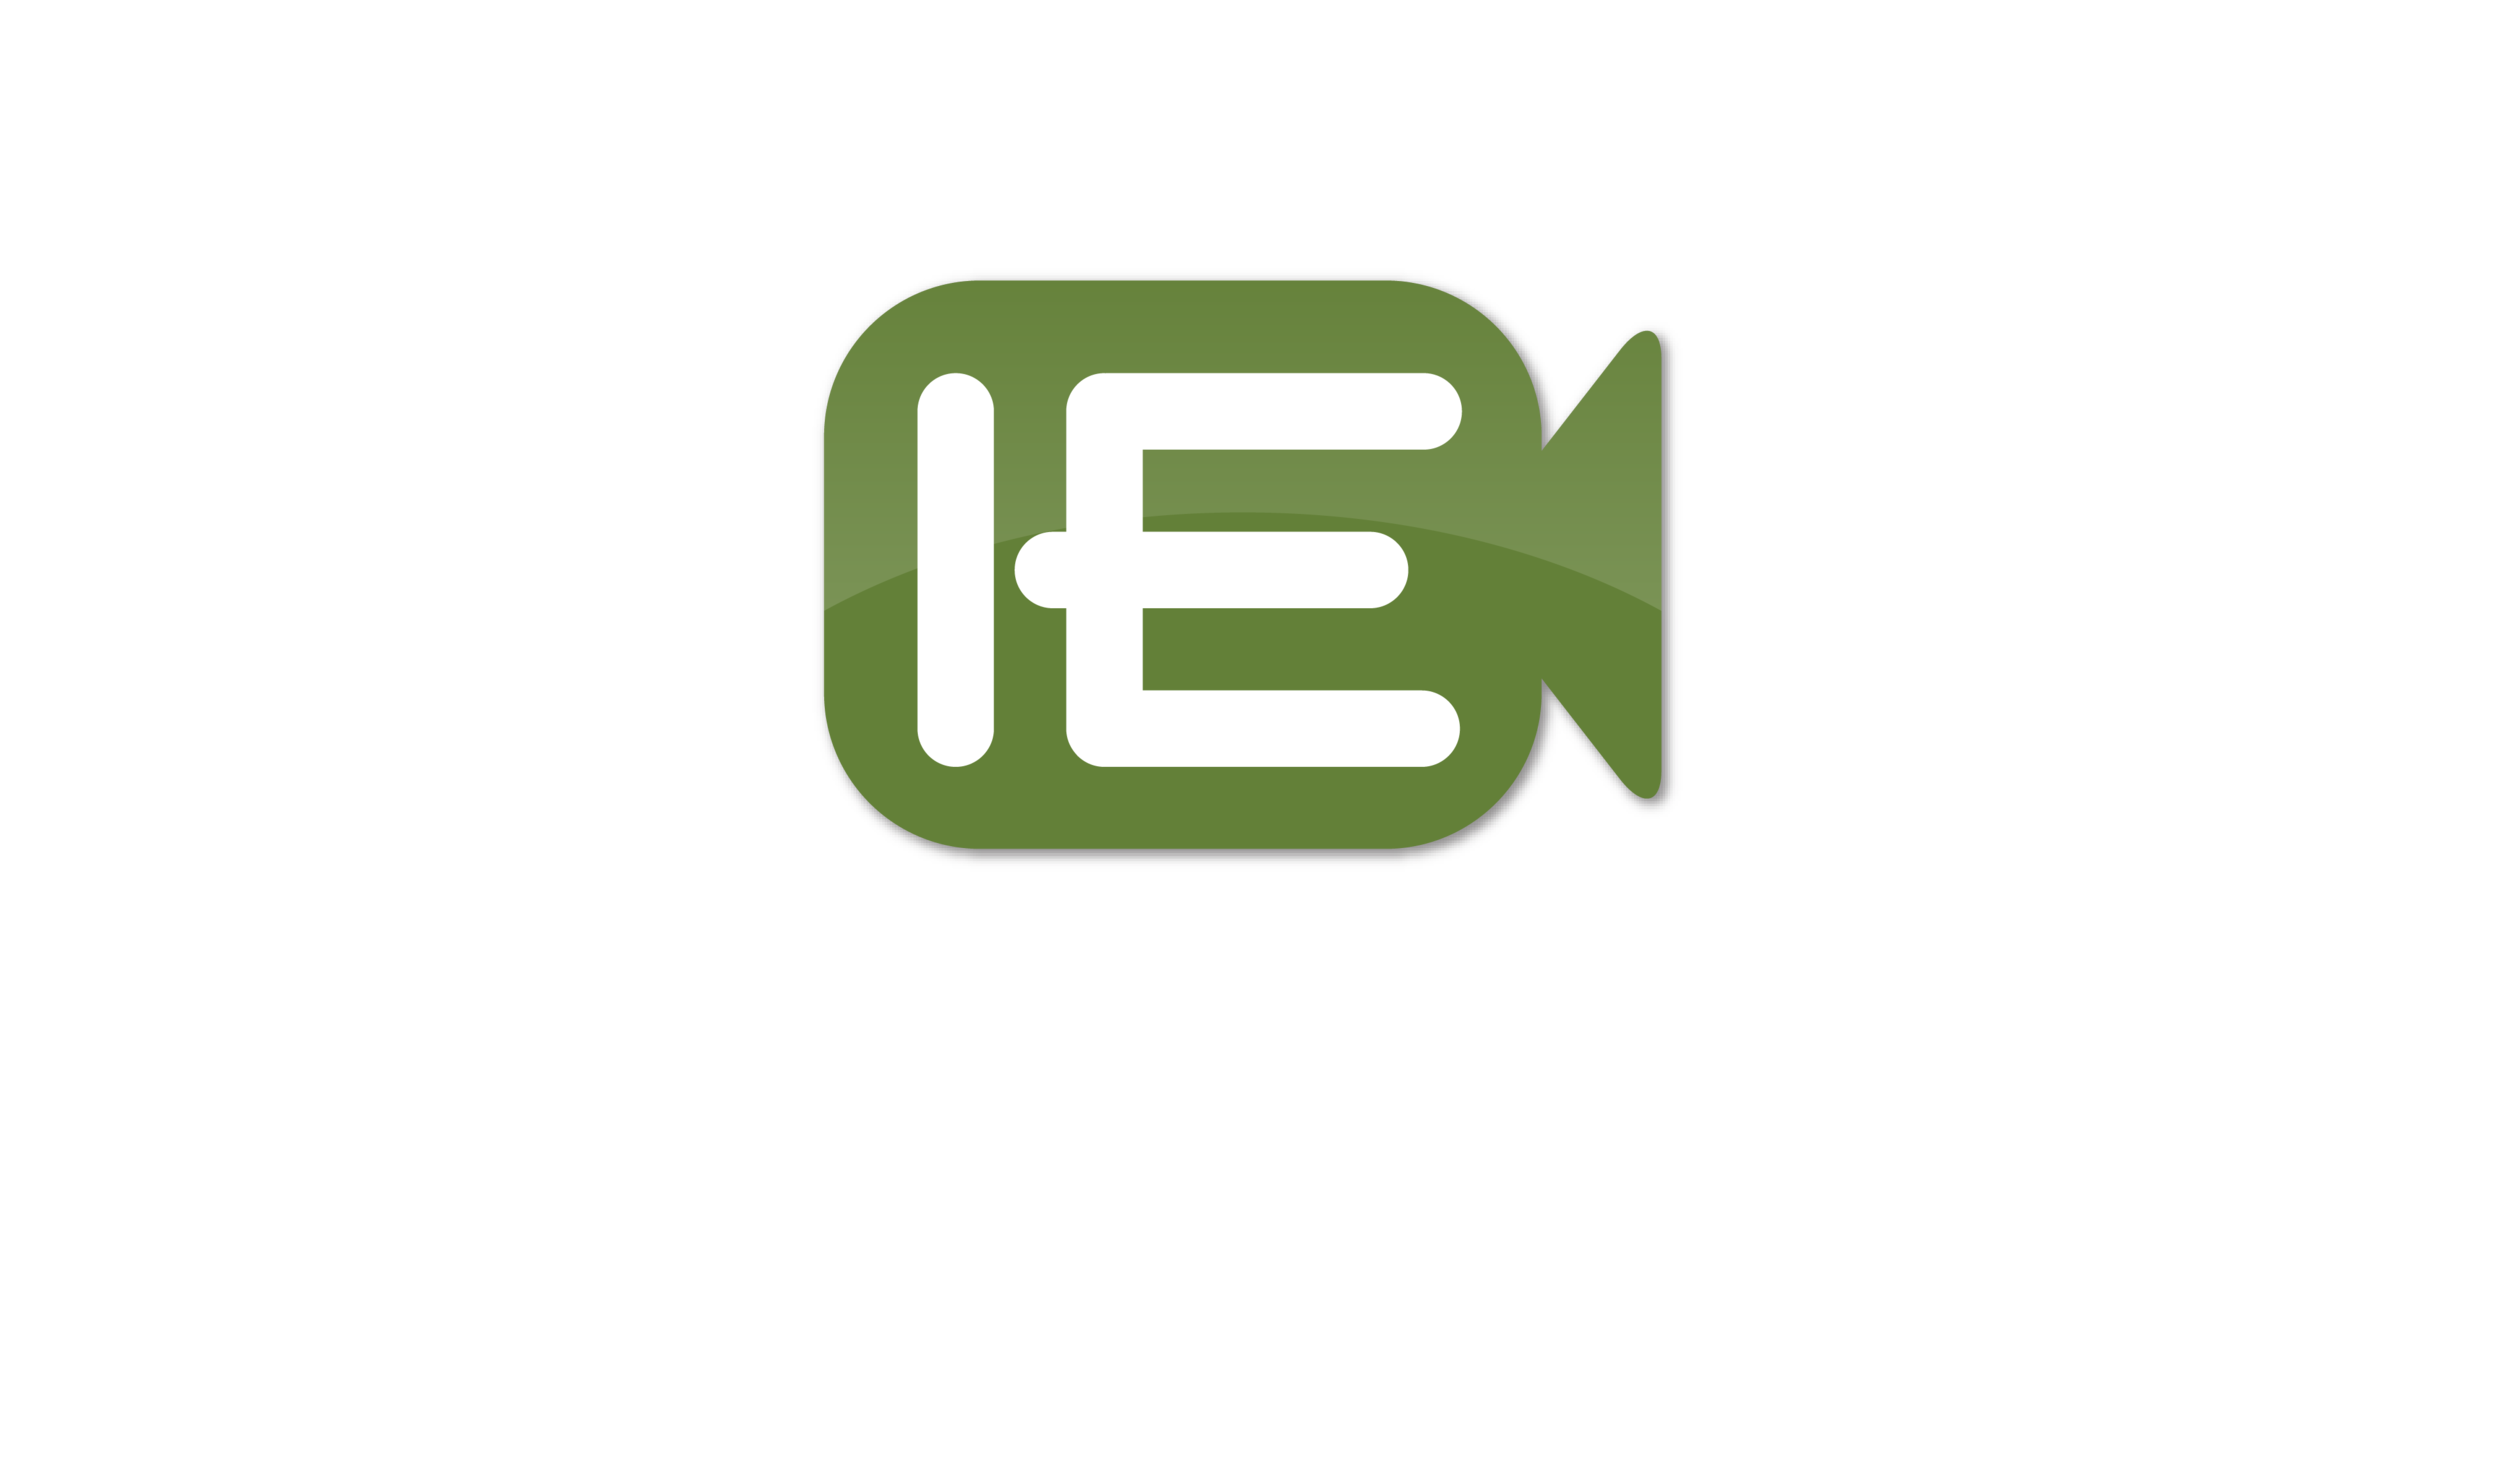 IE Video Production logo (white letters.trans bkgd).png